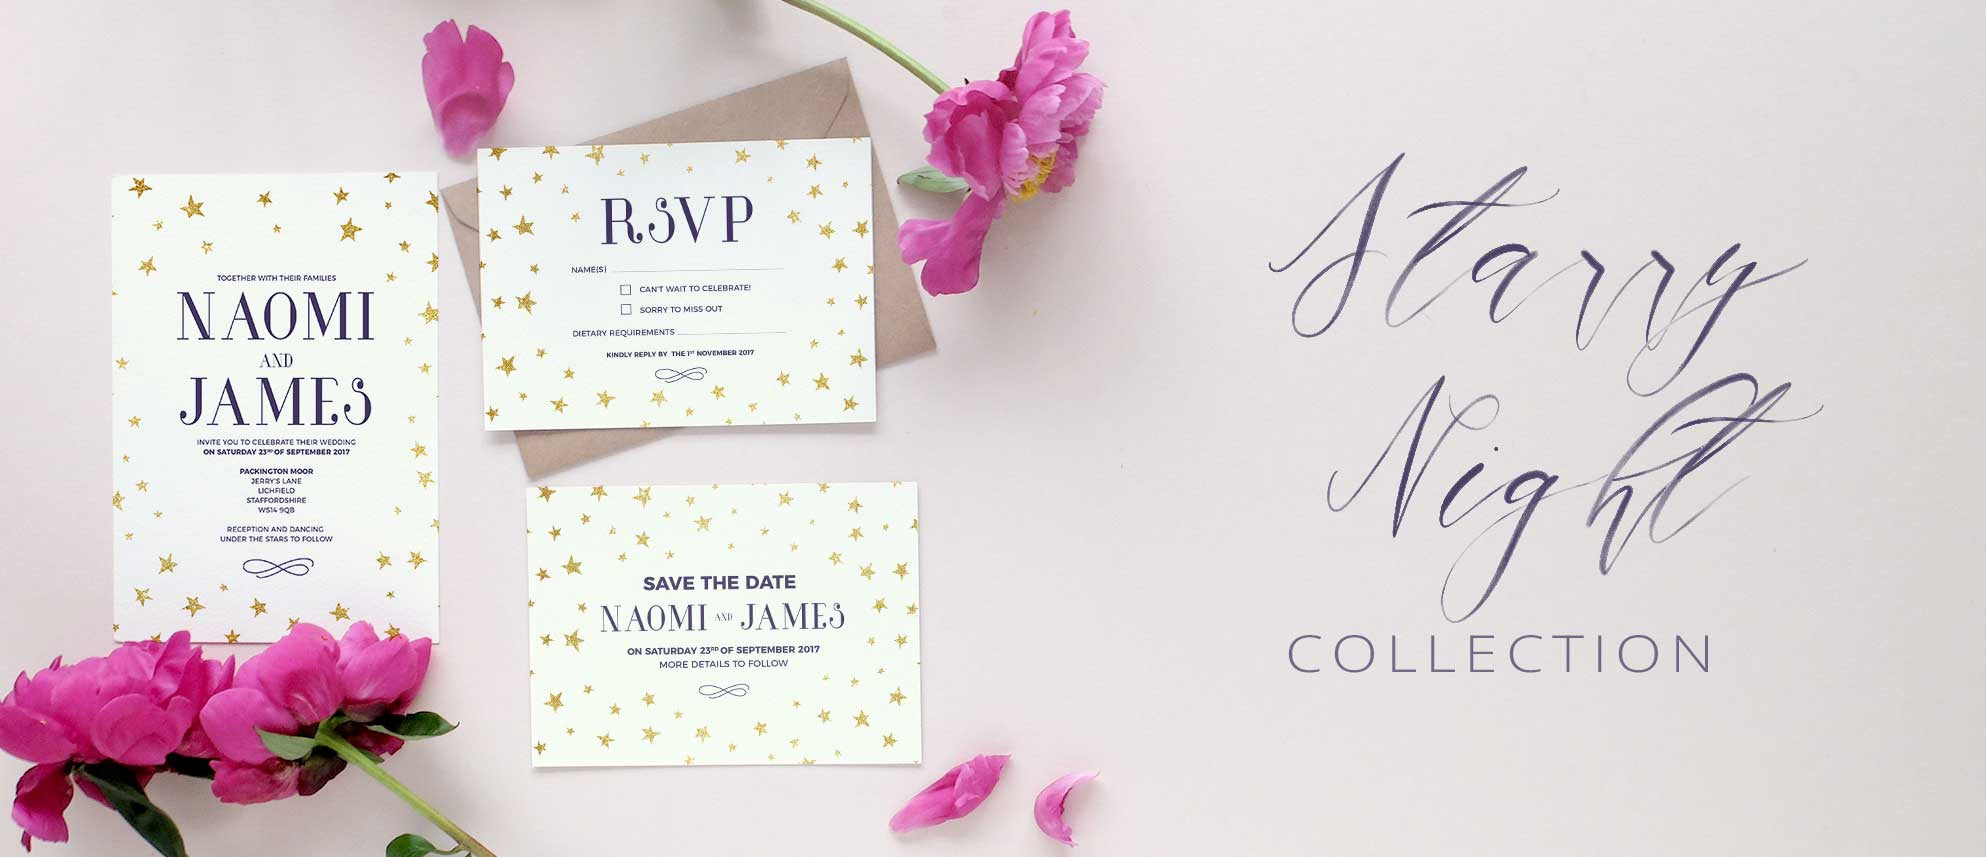 starry night wedding invitation collection - Starry Night Wedding Invitations